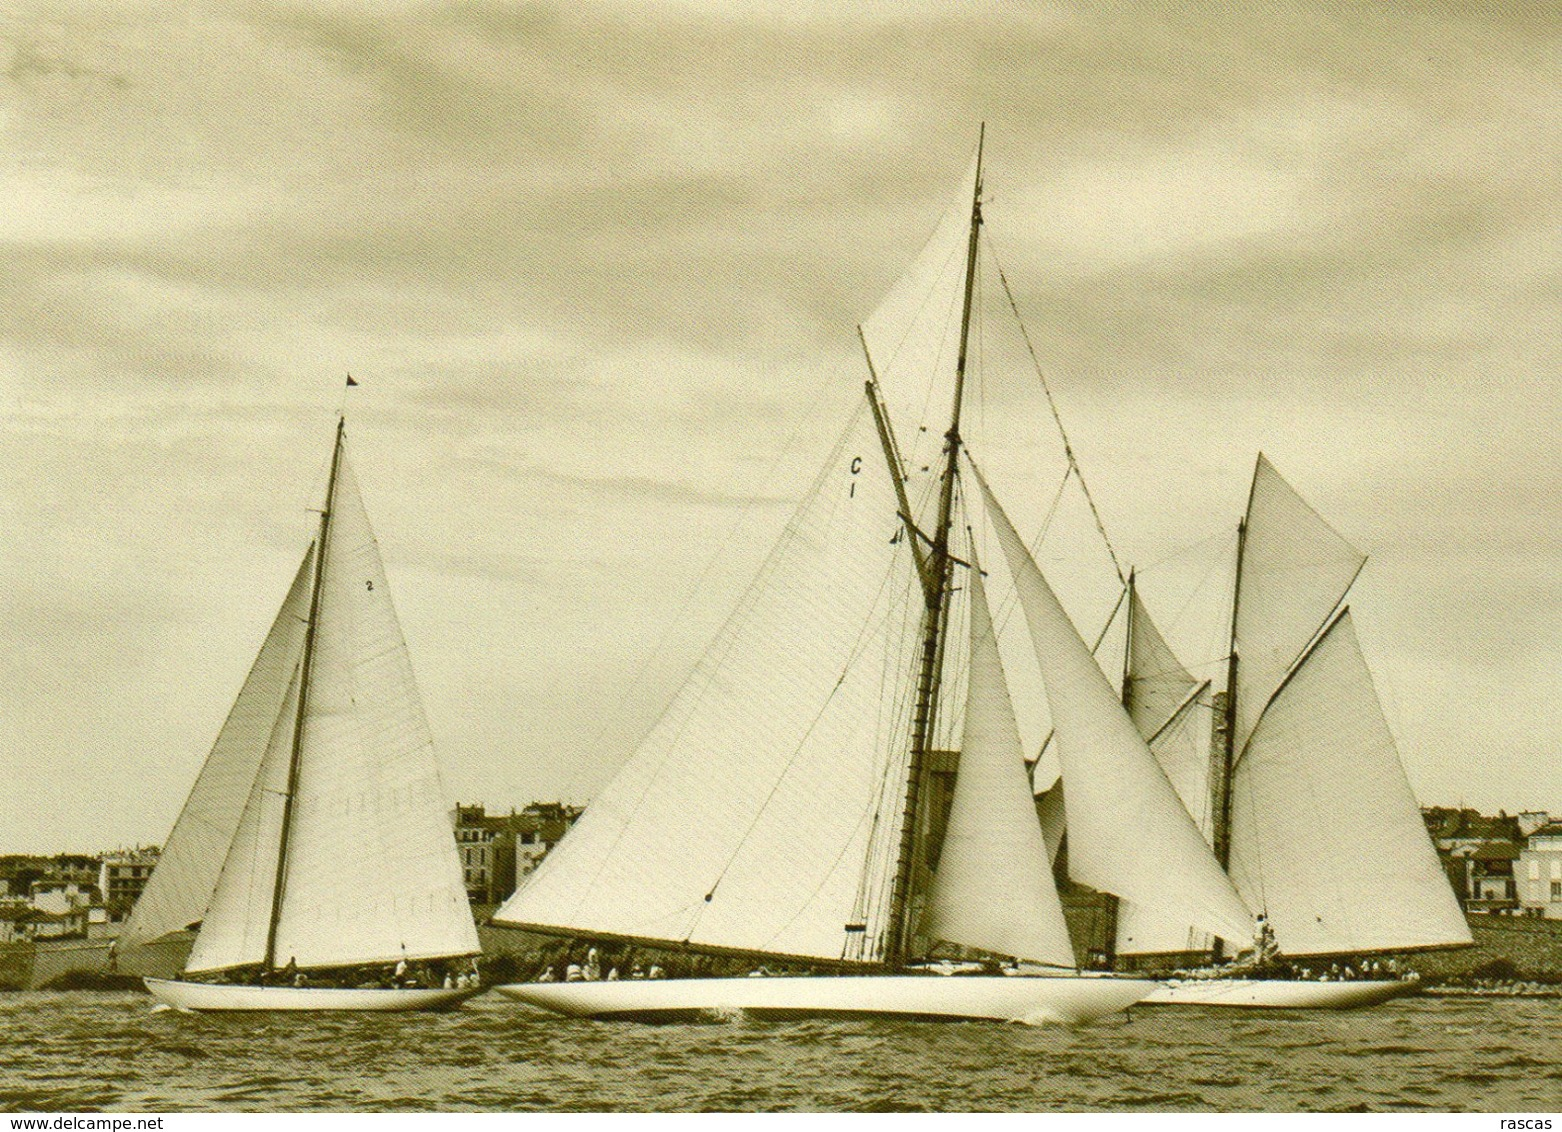 CPM - N - ANTIBES - VOILIER - VOILIERS HALLOWEEN - MARIQUITA - ALTAIR - Sailing Vessels